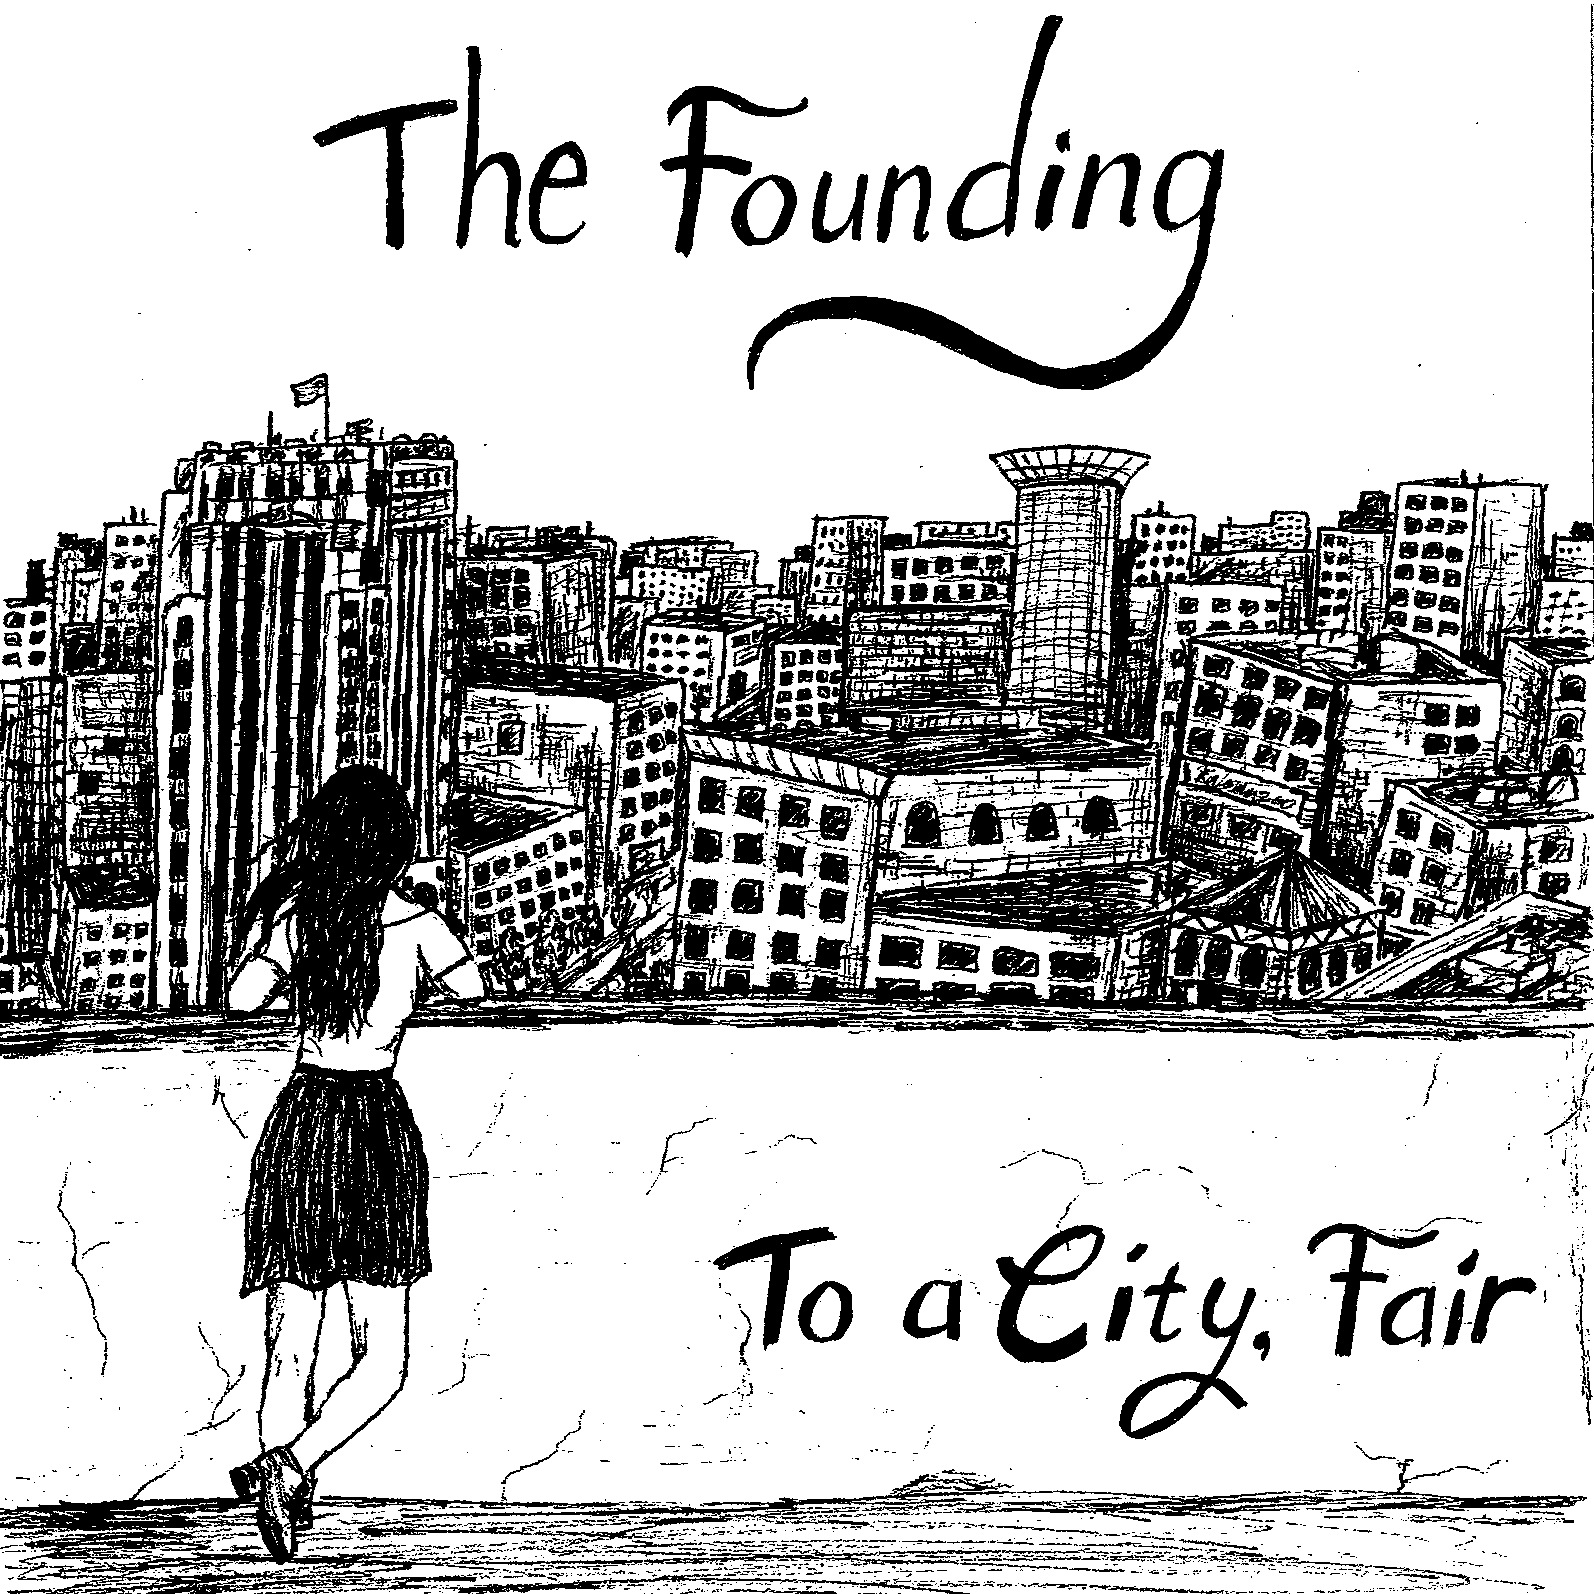 The Founding, Original scan, cropped (album cover).jpg